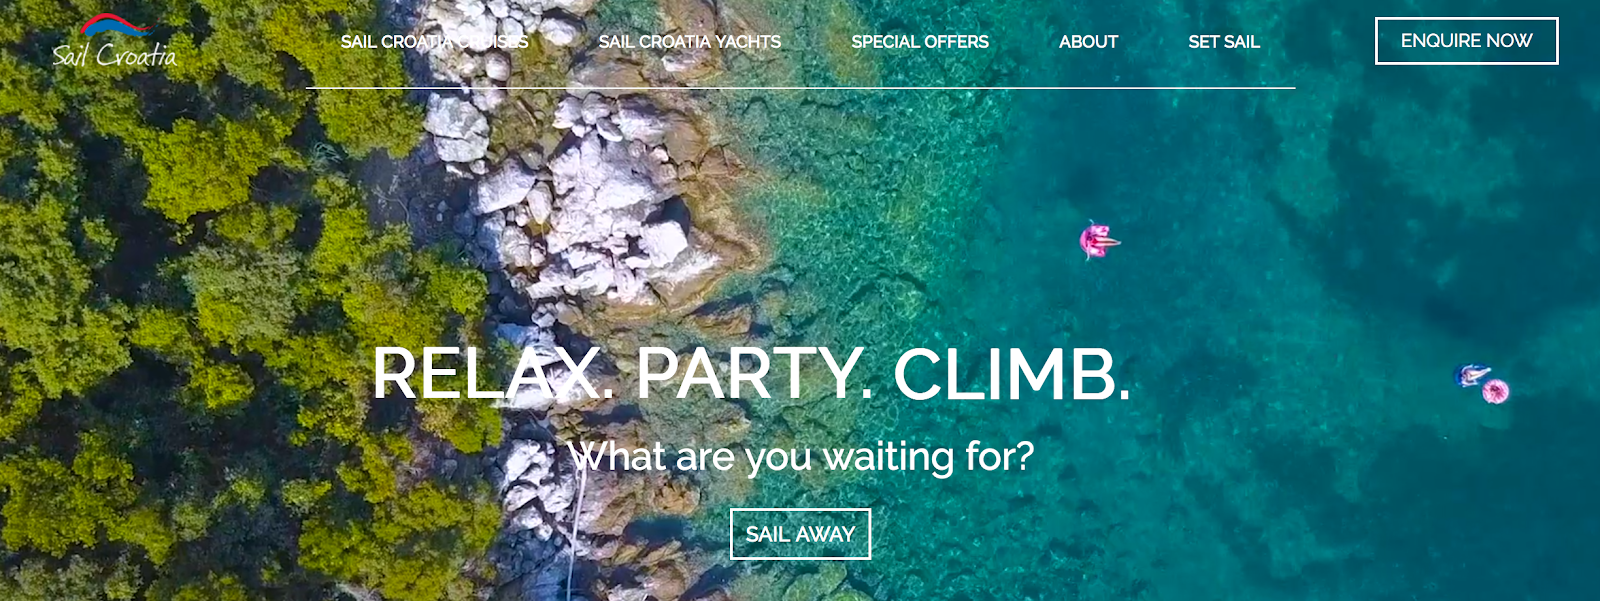 Travel Brands looking for Influencers   Sail Croatia